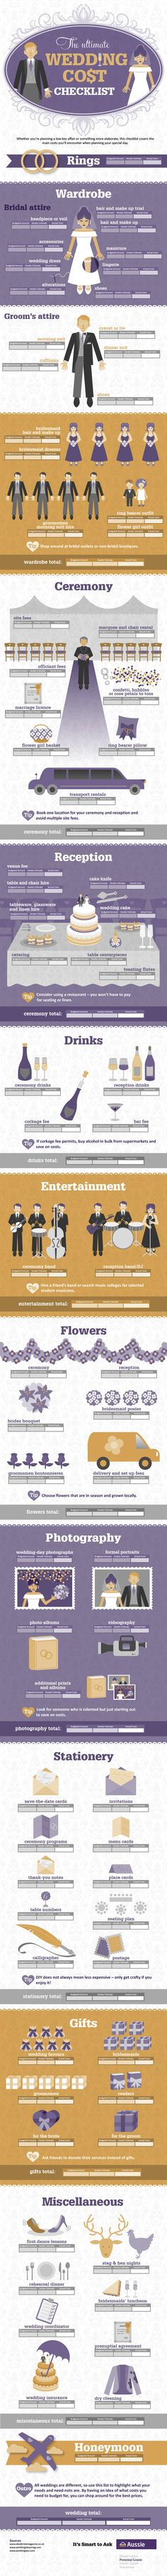 The ultimate wedding cost checklist